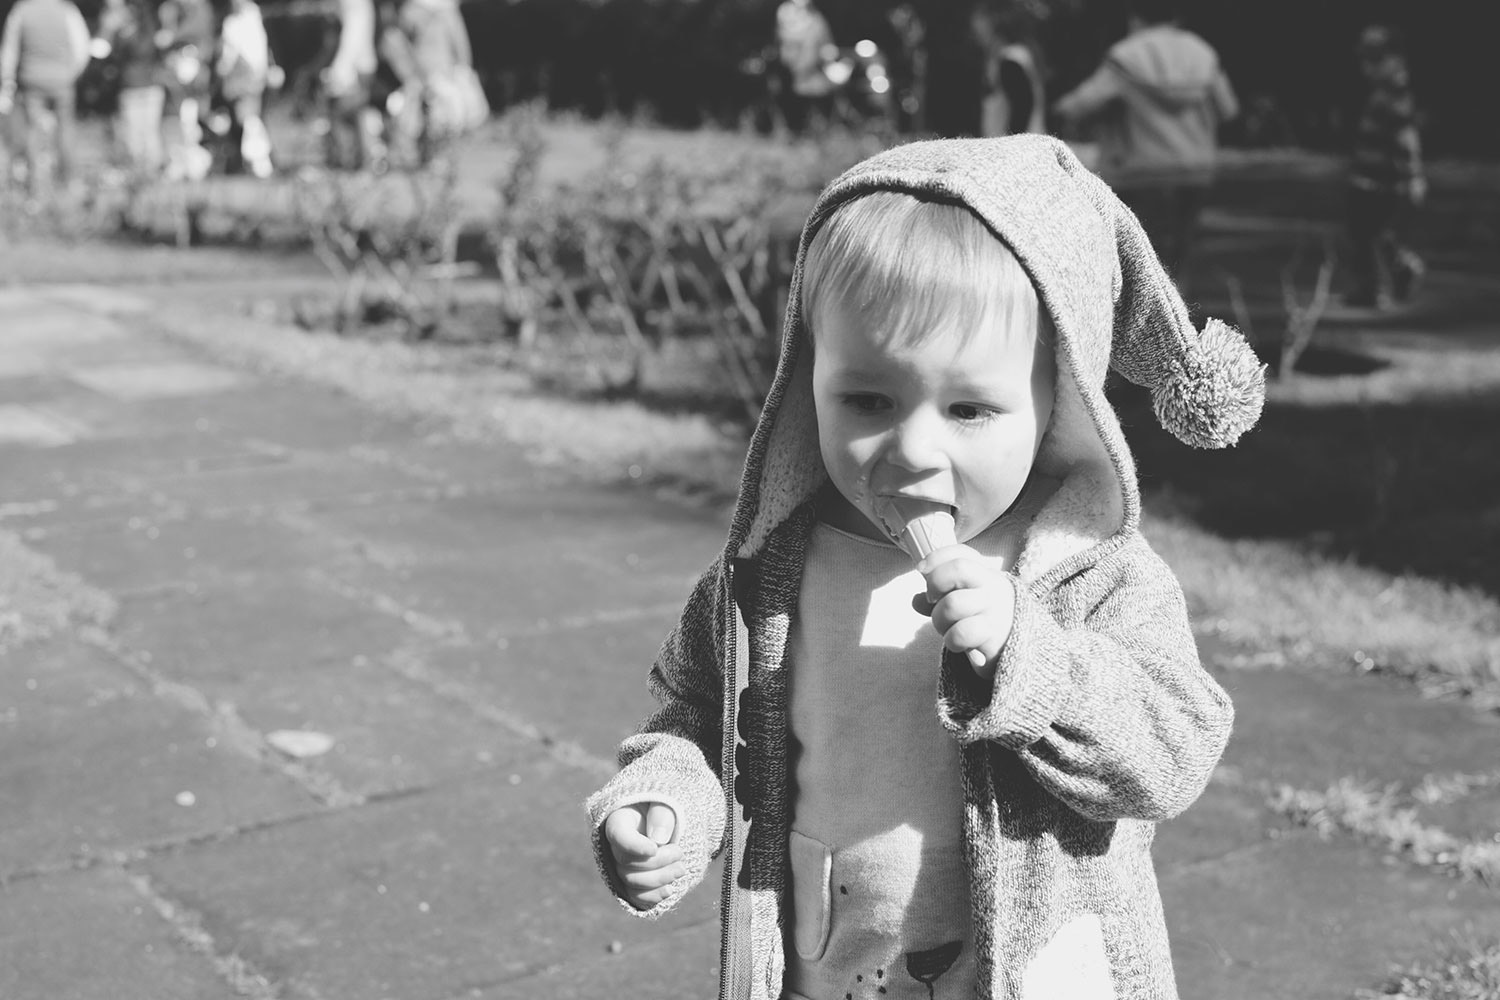 Fashion [Good] Friday; Sprinkles & Sunshine - Toddler wearing H&M cardigan, Next jumper, Gap jeans and George Cars boots, running around the park eating ice-cream Easter